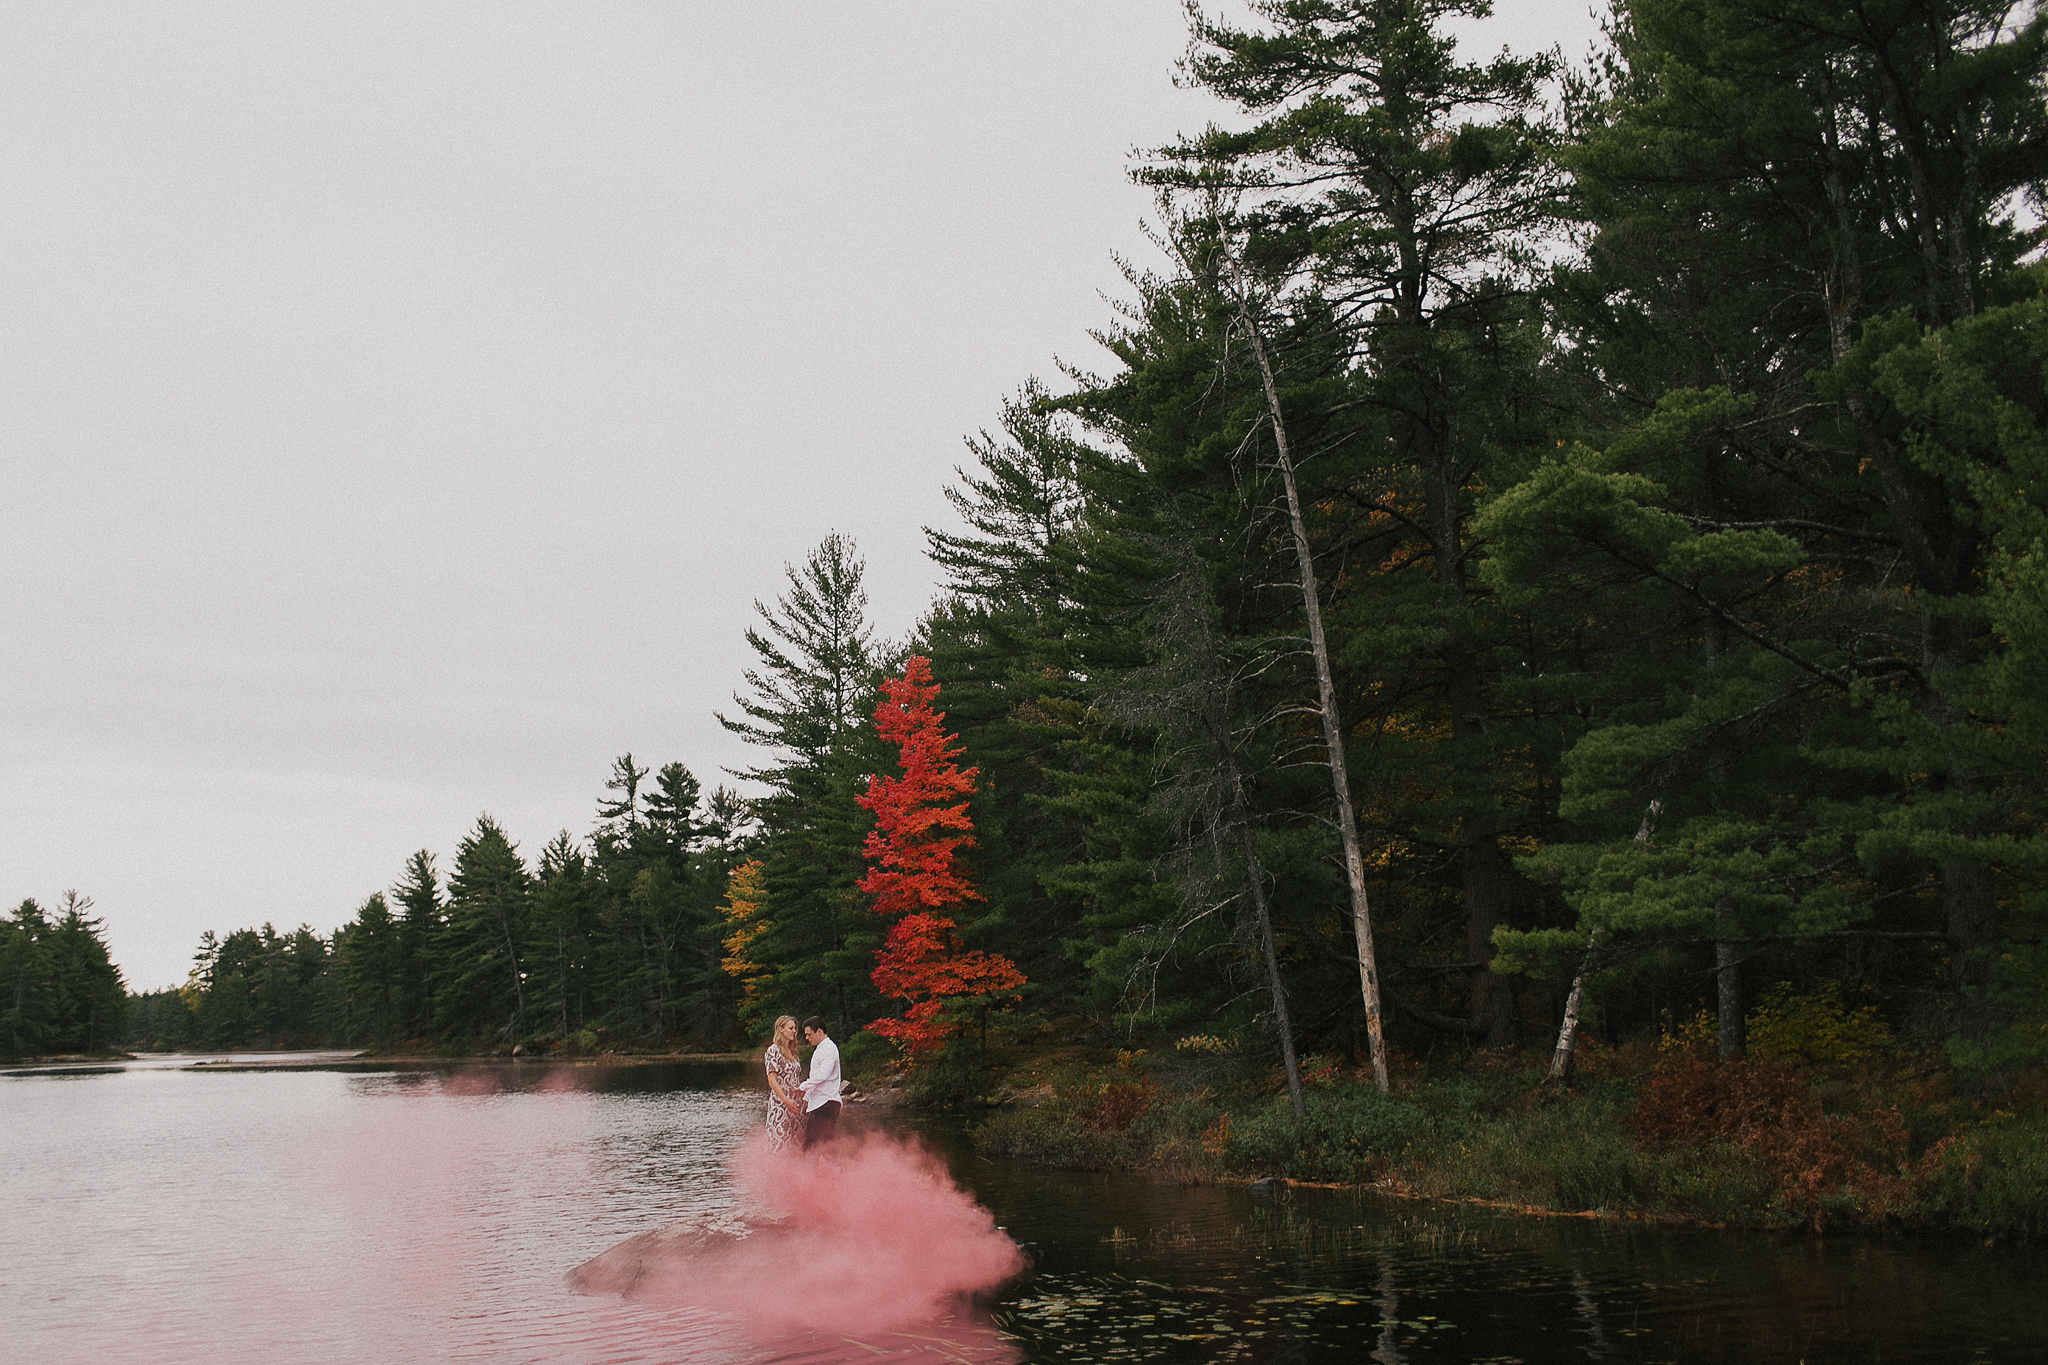 richelle-and-justin-muskoka-engagement-114.jpg